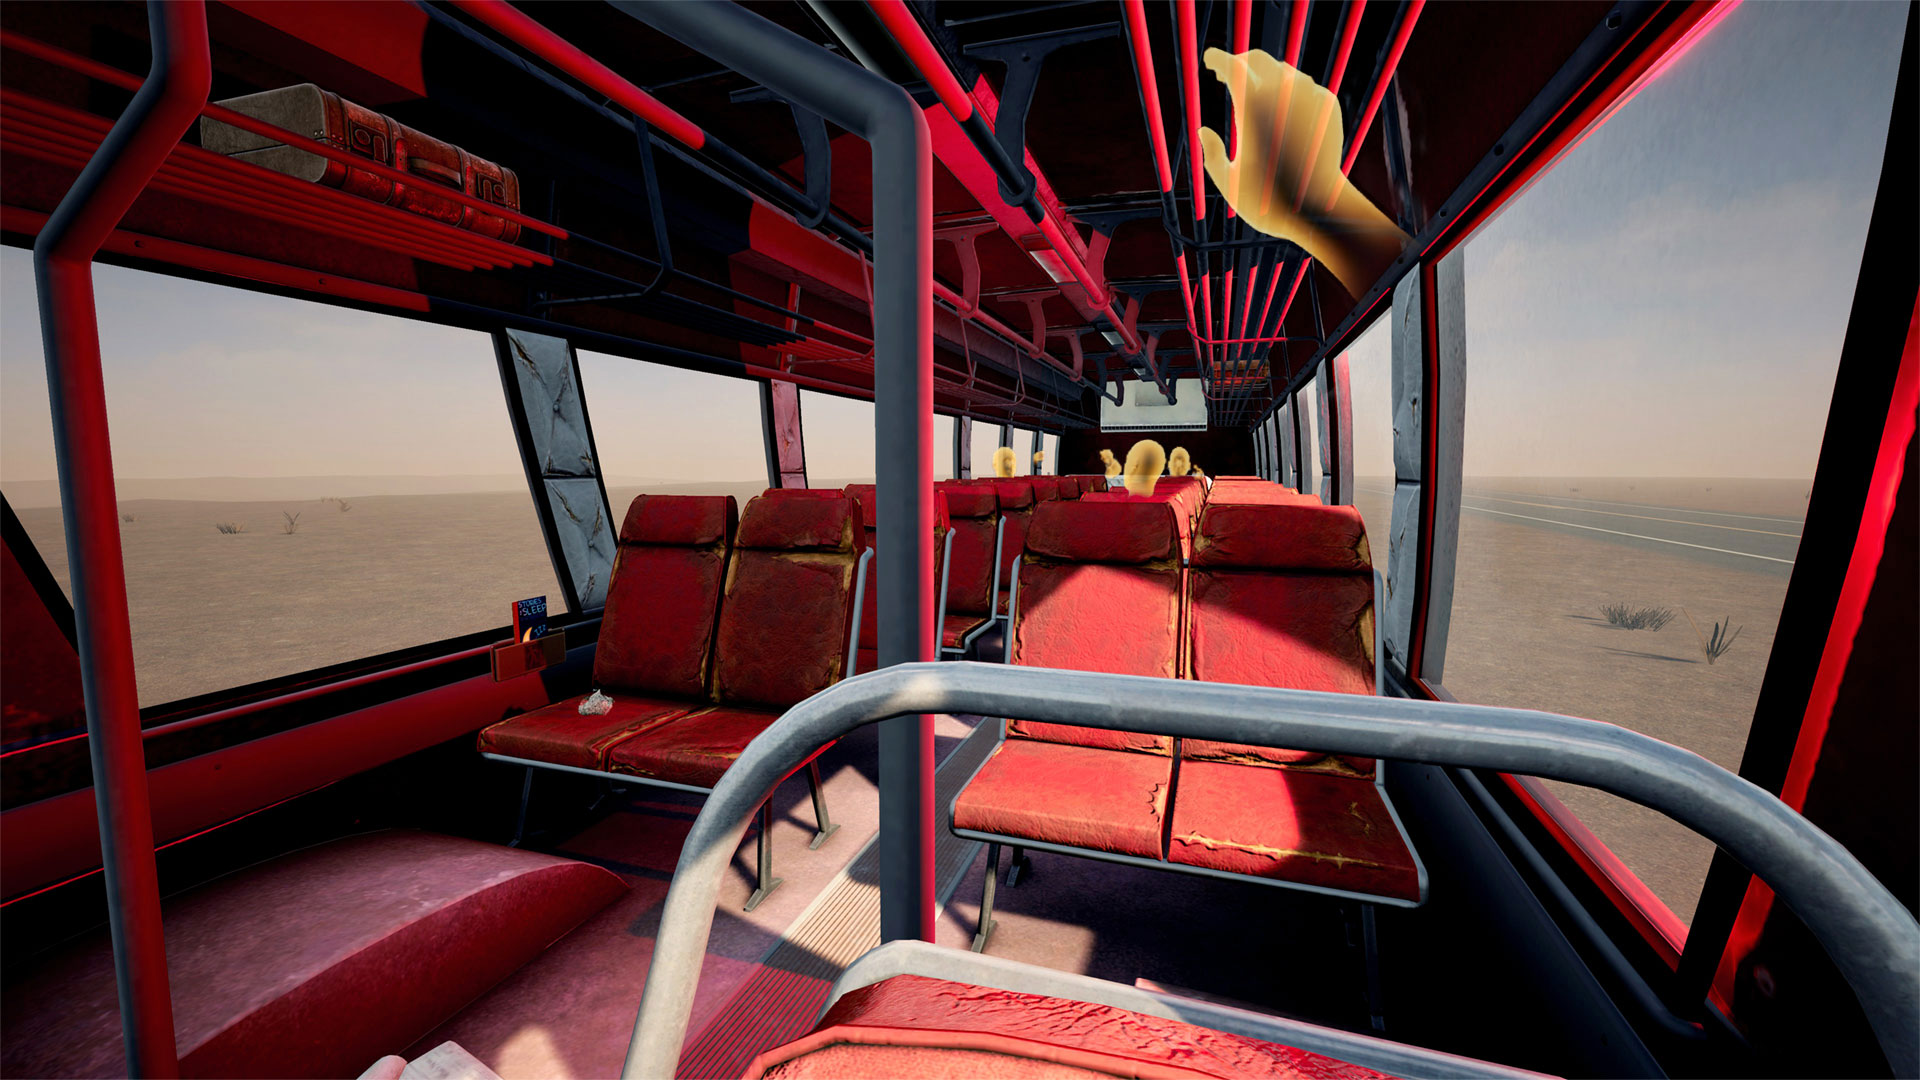 Desert Bus The Very Worst Video Game Ever Made Now Has